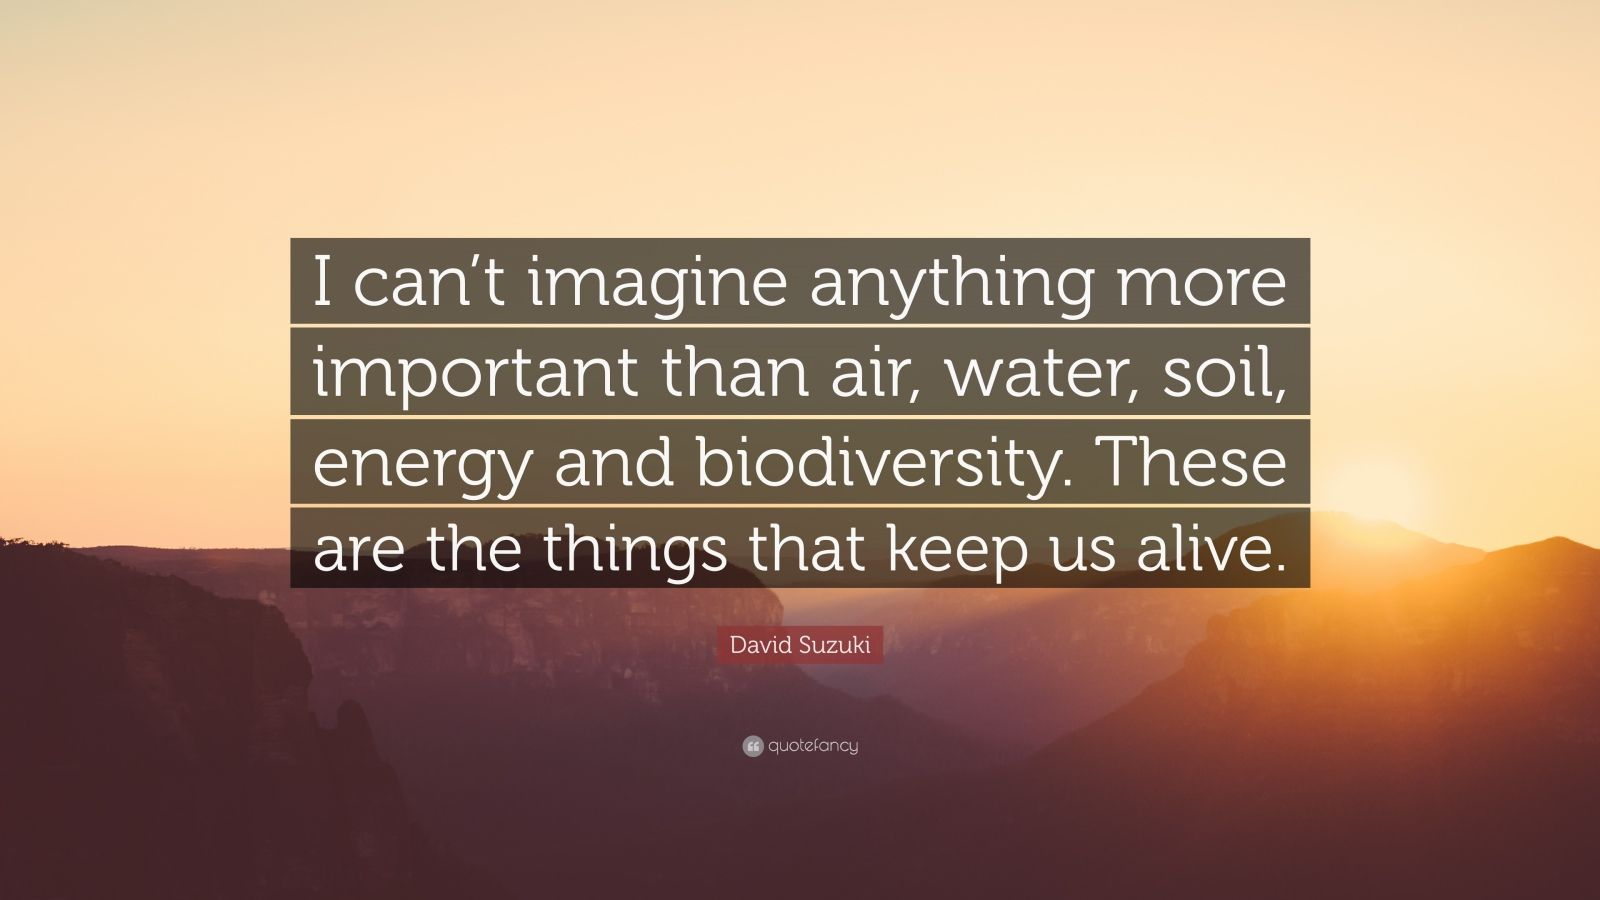 """David Suzuki Quote: """"I can't imagine anything more important than air, water, soil, energy and biodiversity. These are the things that keep us alive."""""""